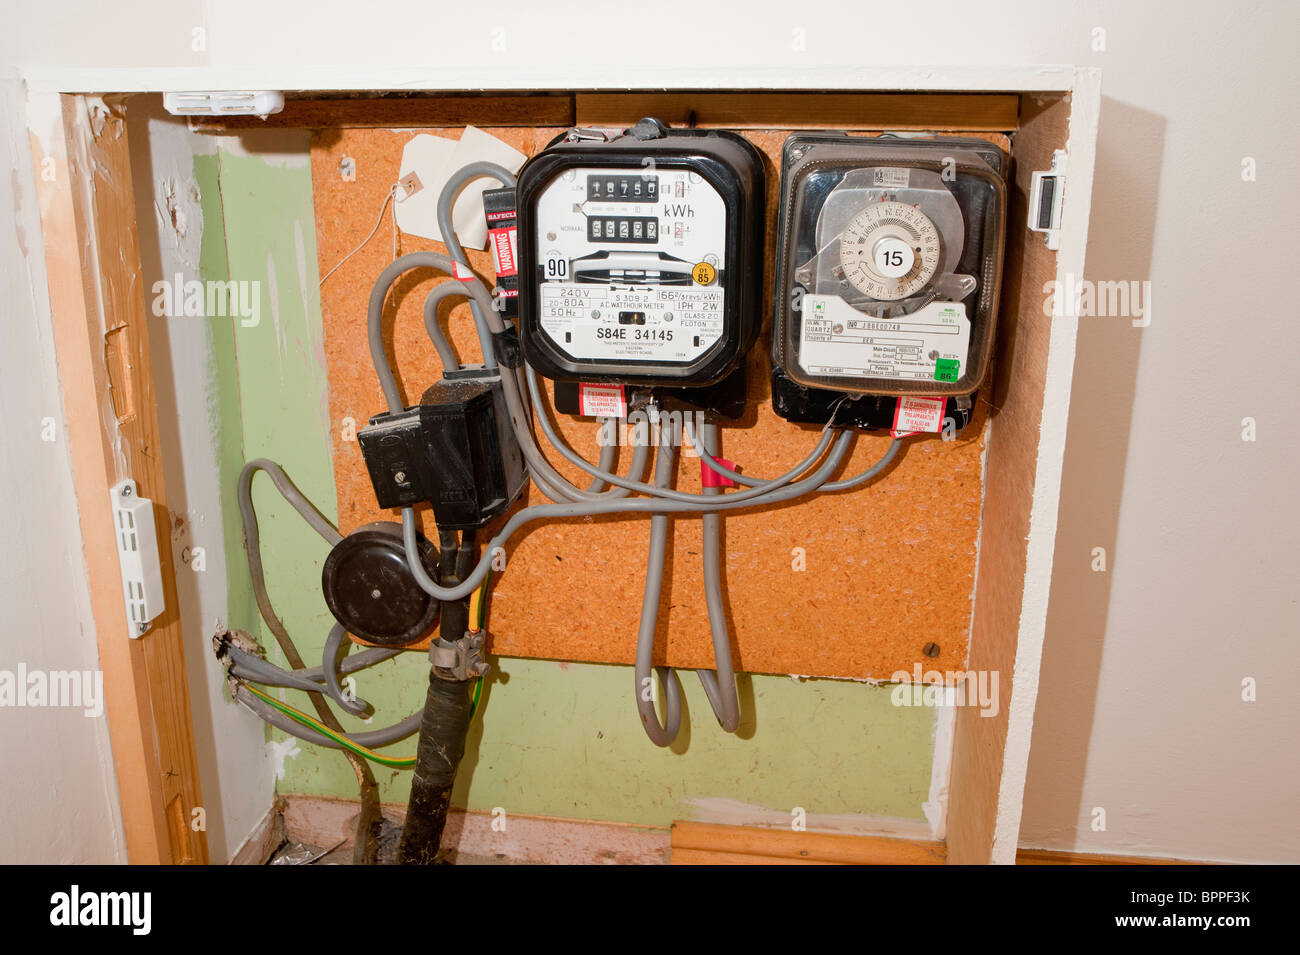 Dangerous Electric Meter Messy Faulty Electrical Wiring Auto